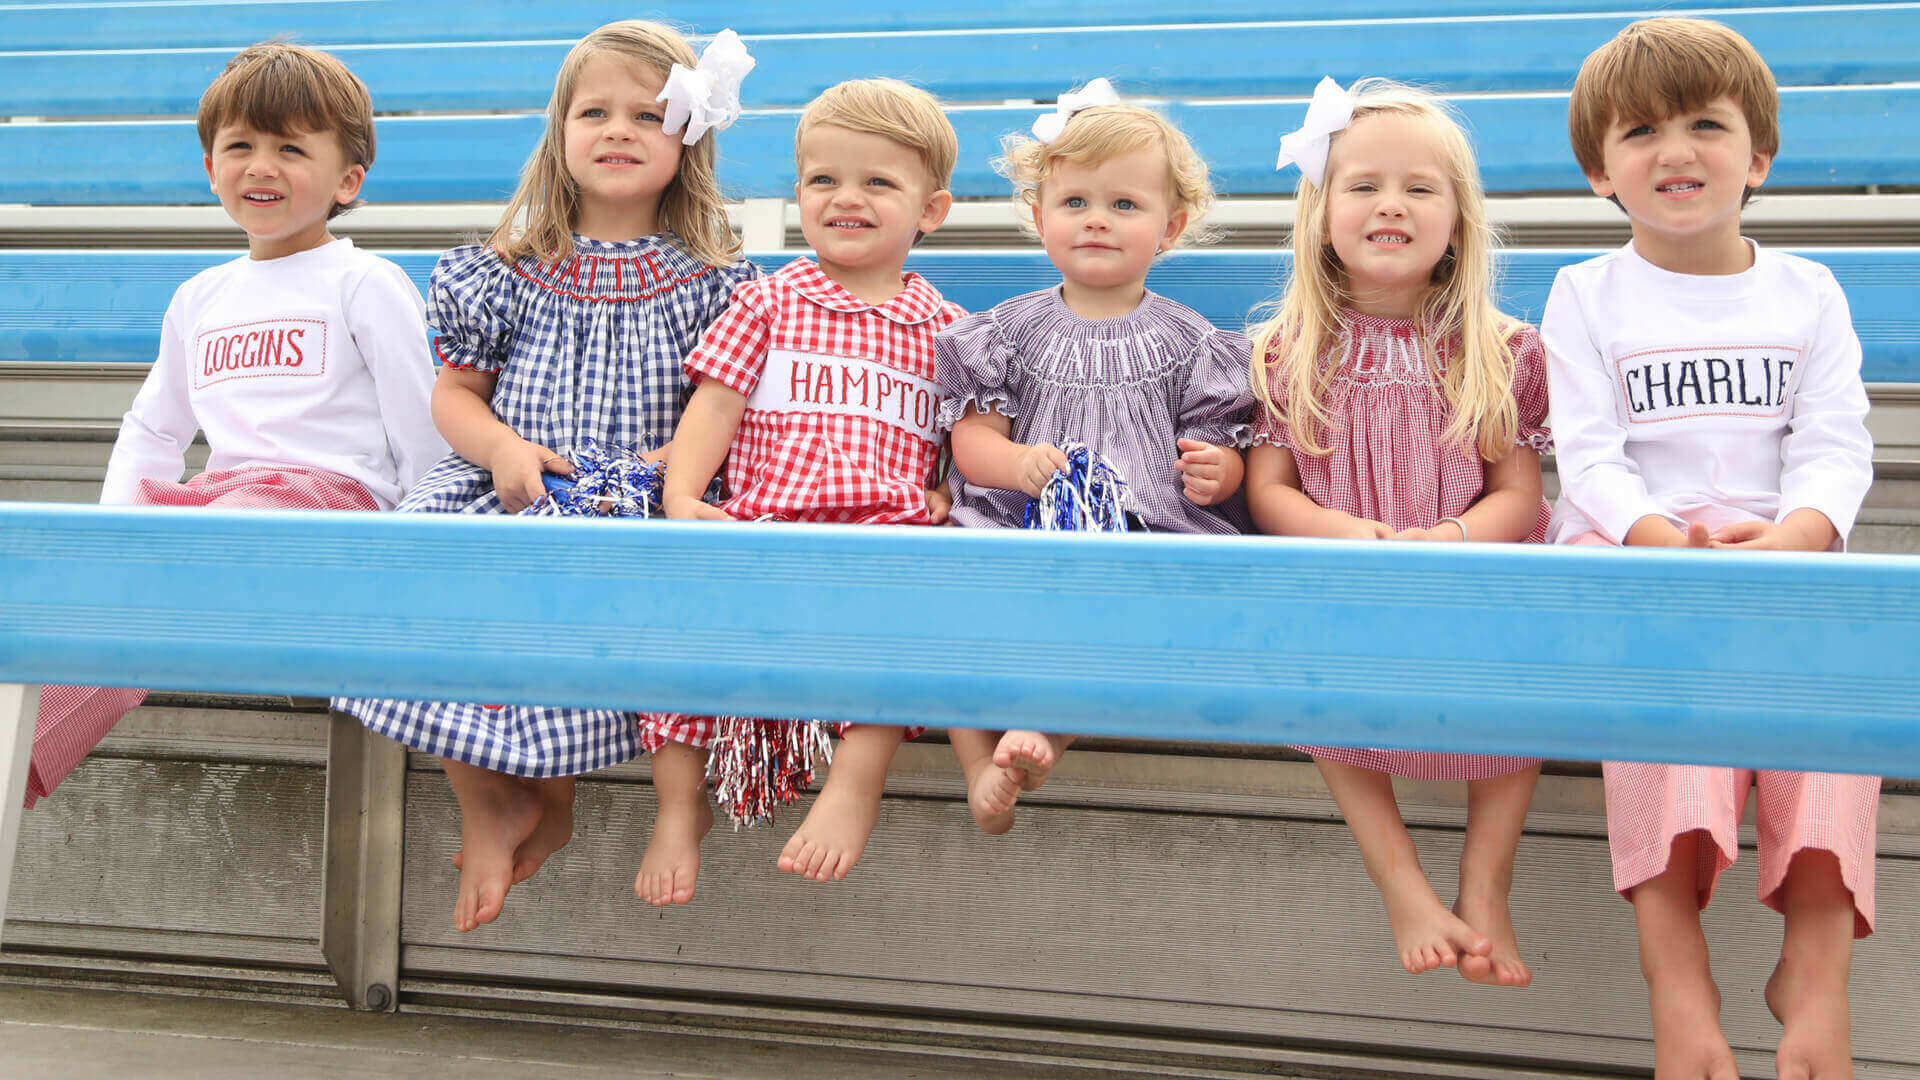 collegiate collection by cecil and lou - kids college color clothing